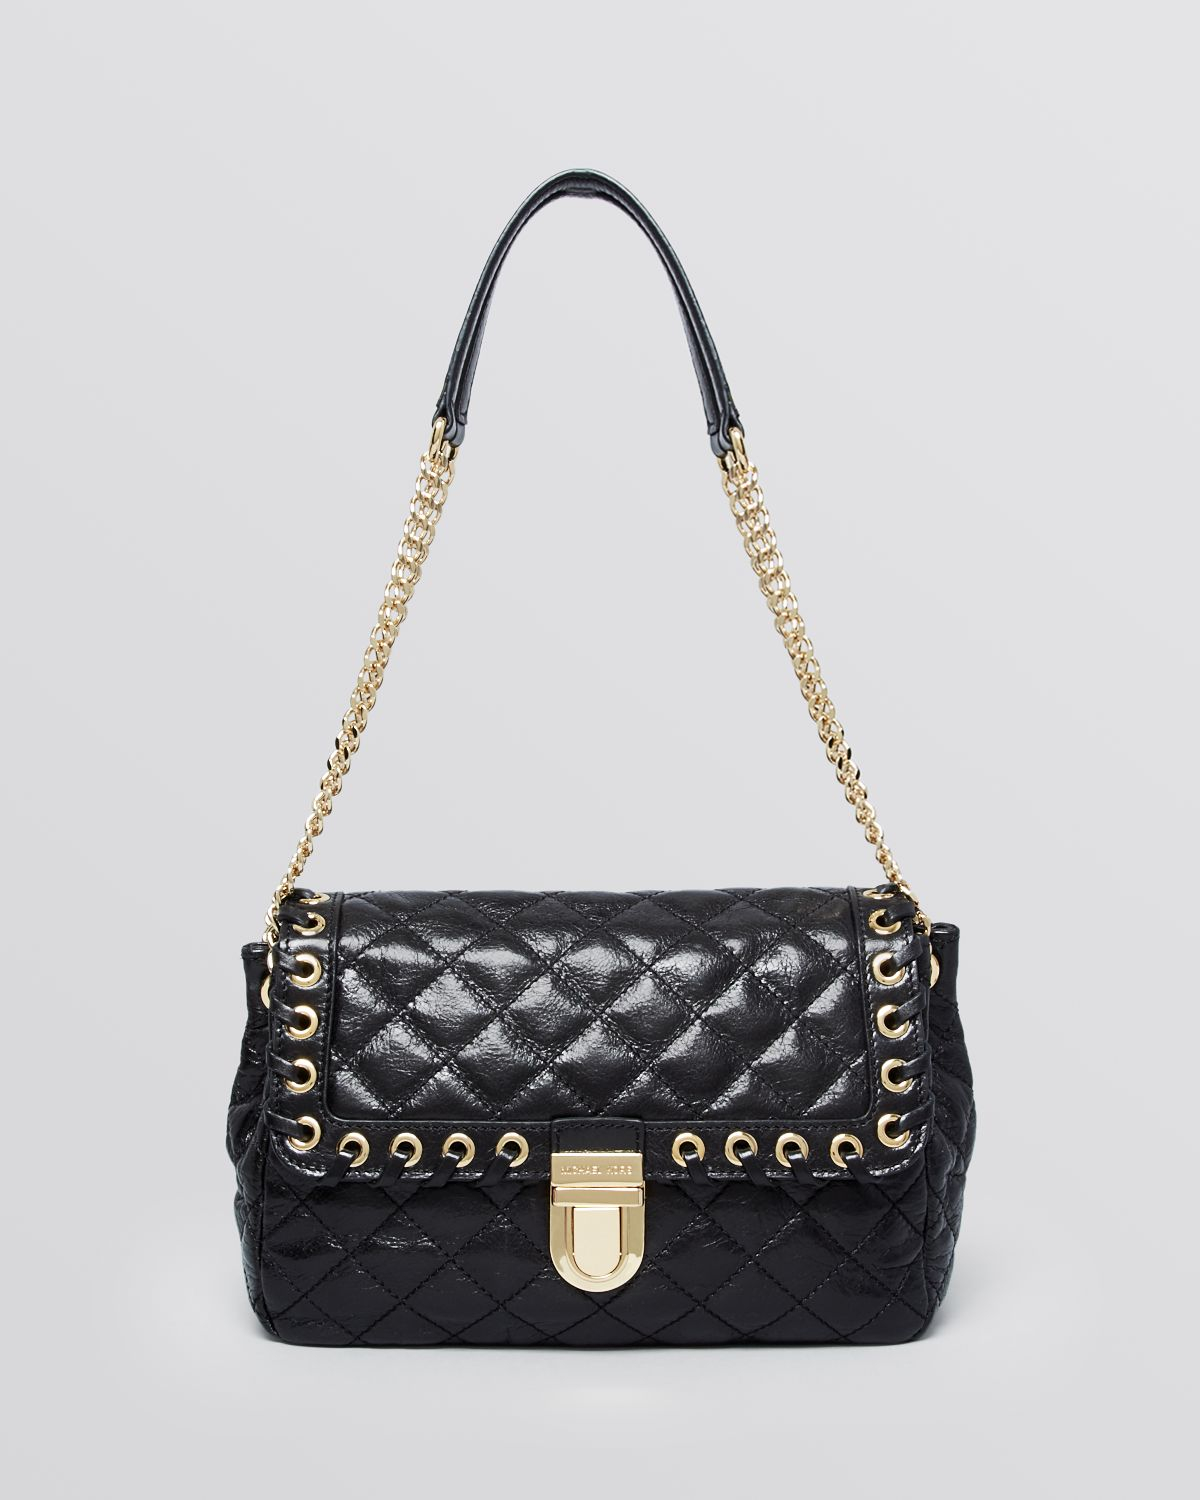 62356be70ad7 Gallery. Previously sold at: Bloomingdale's · Women's Michael Kors Quilted  Bag Women's Michael By Michael Kors Sloan